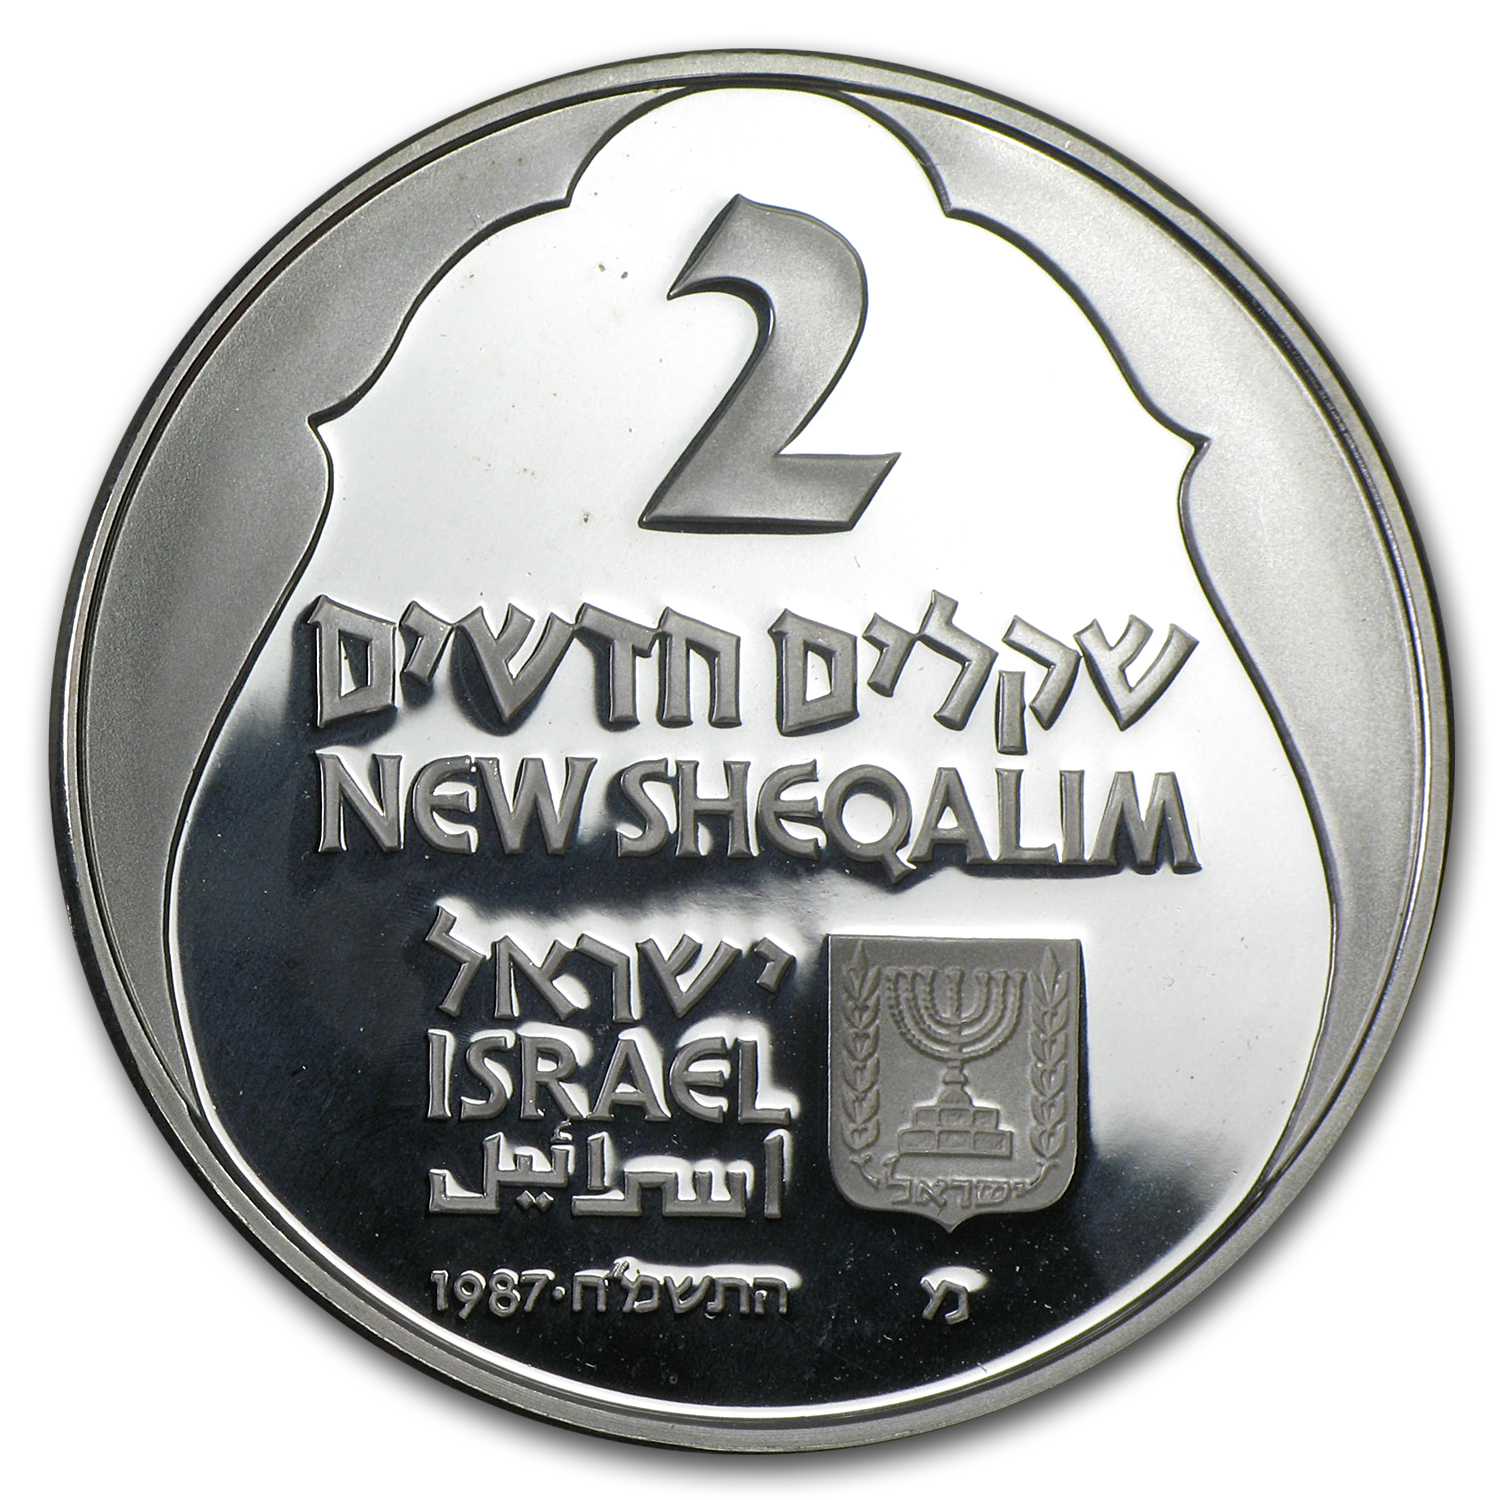 Israel 1984 Silver Proof 2 Sheqalim English Lamp